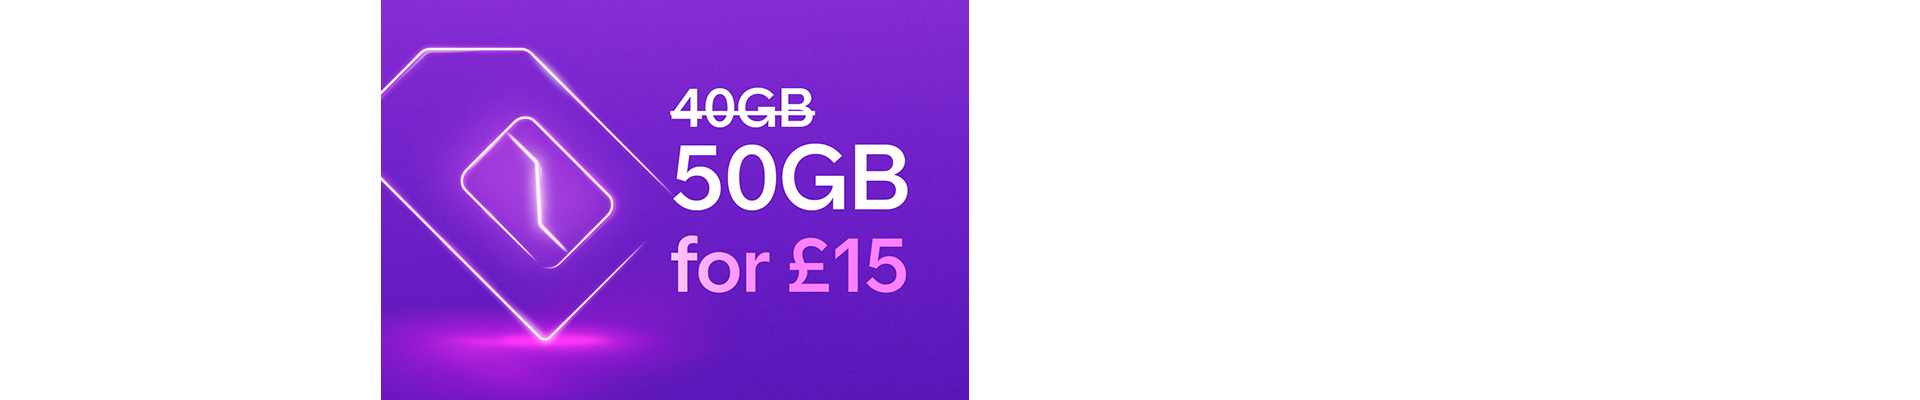 50GB for £15 for BT Broadband customers